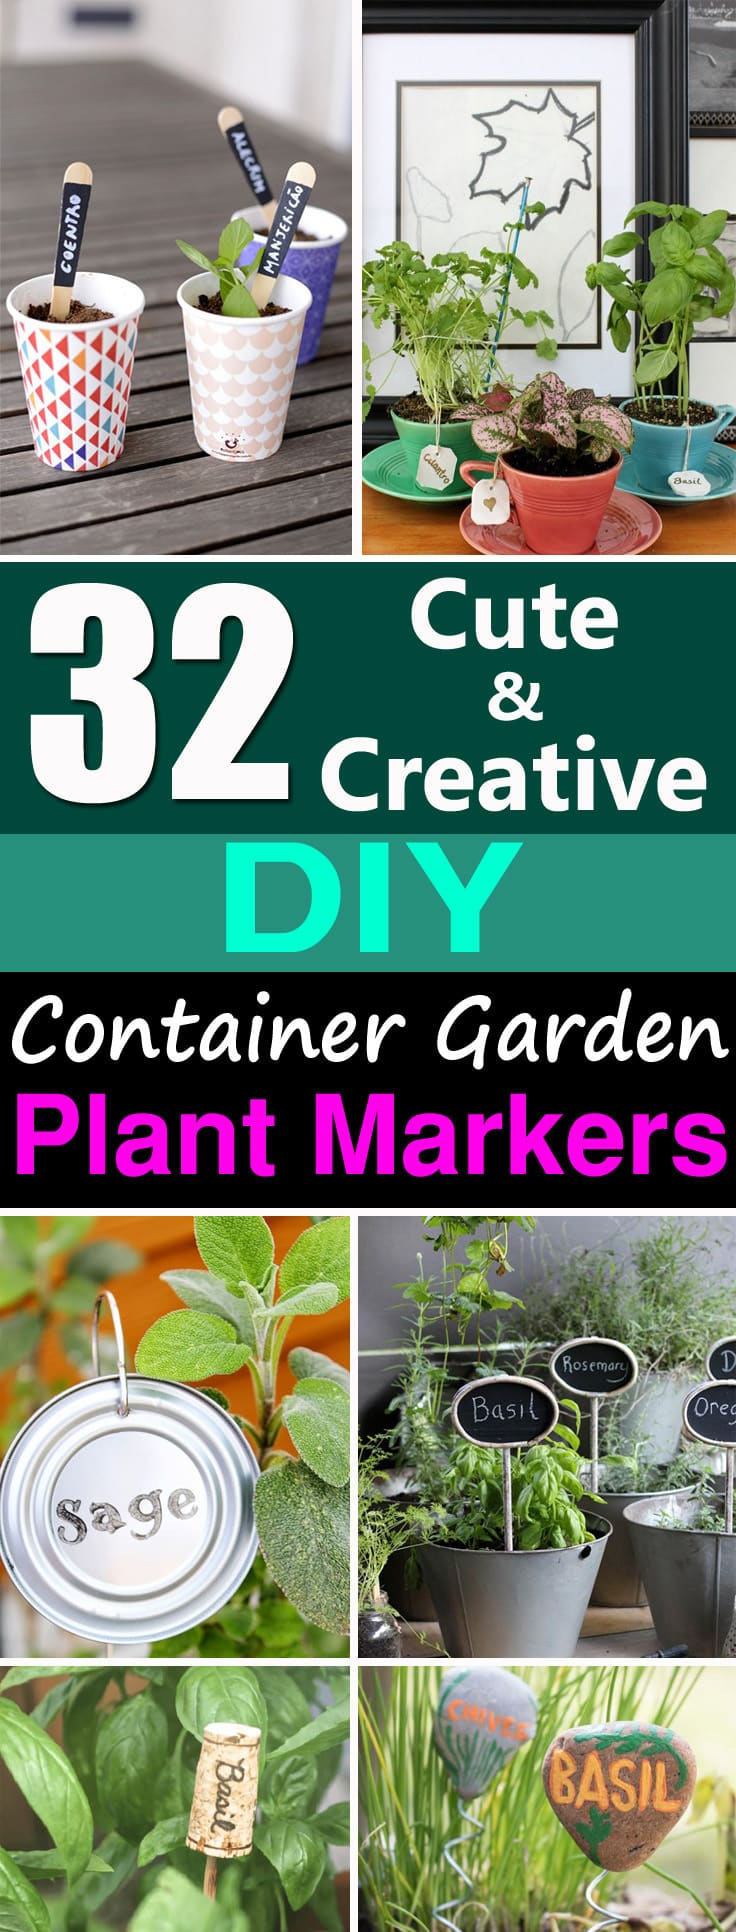 Learn how to create GardenMarkers for your container garden, choose from this extensive list of 32 DIY Plant Marker Ideas!